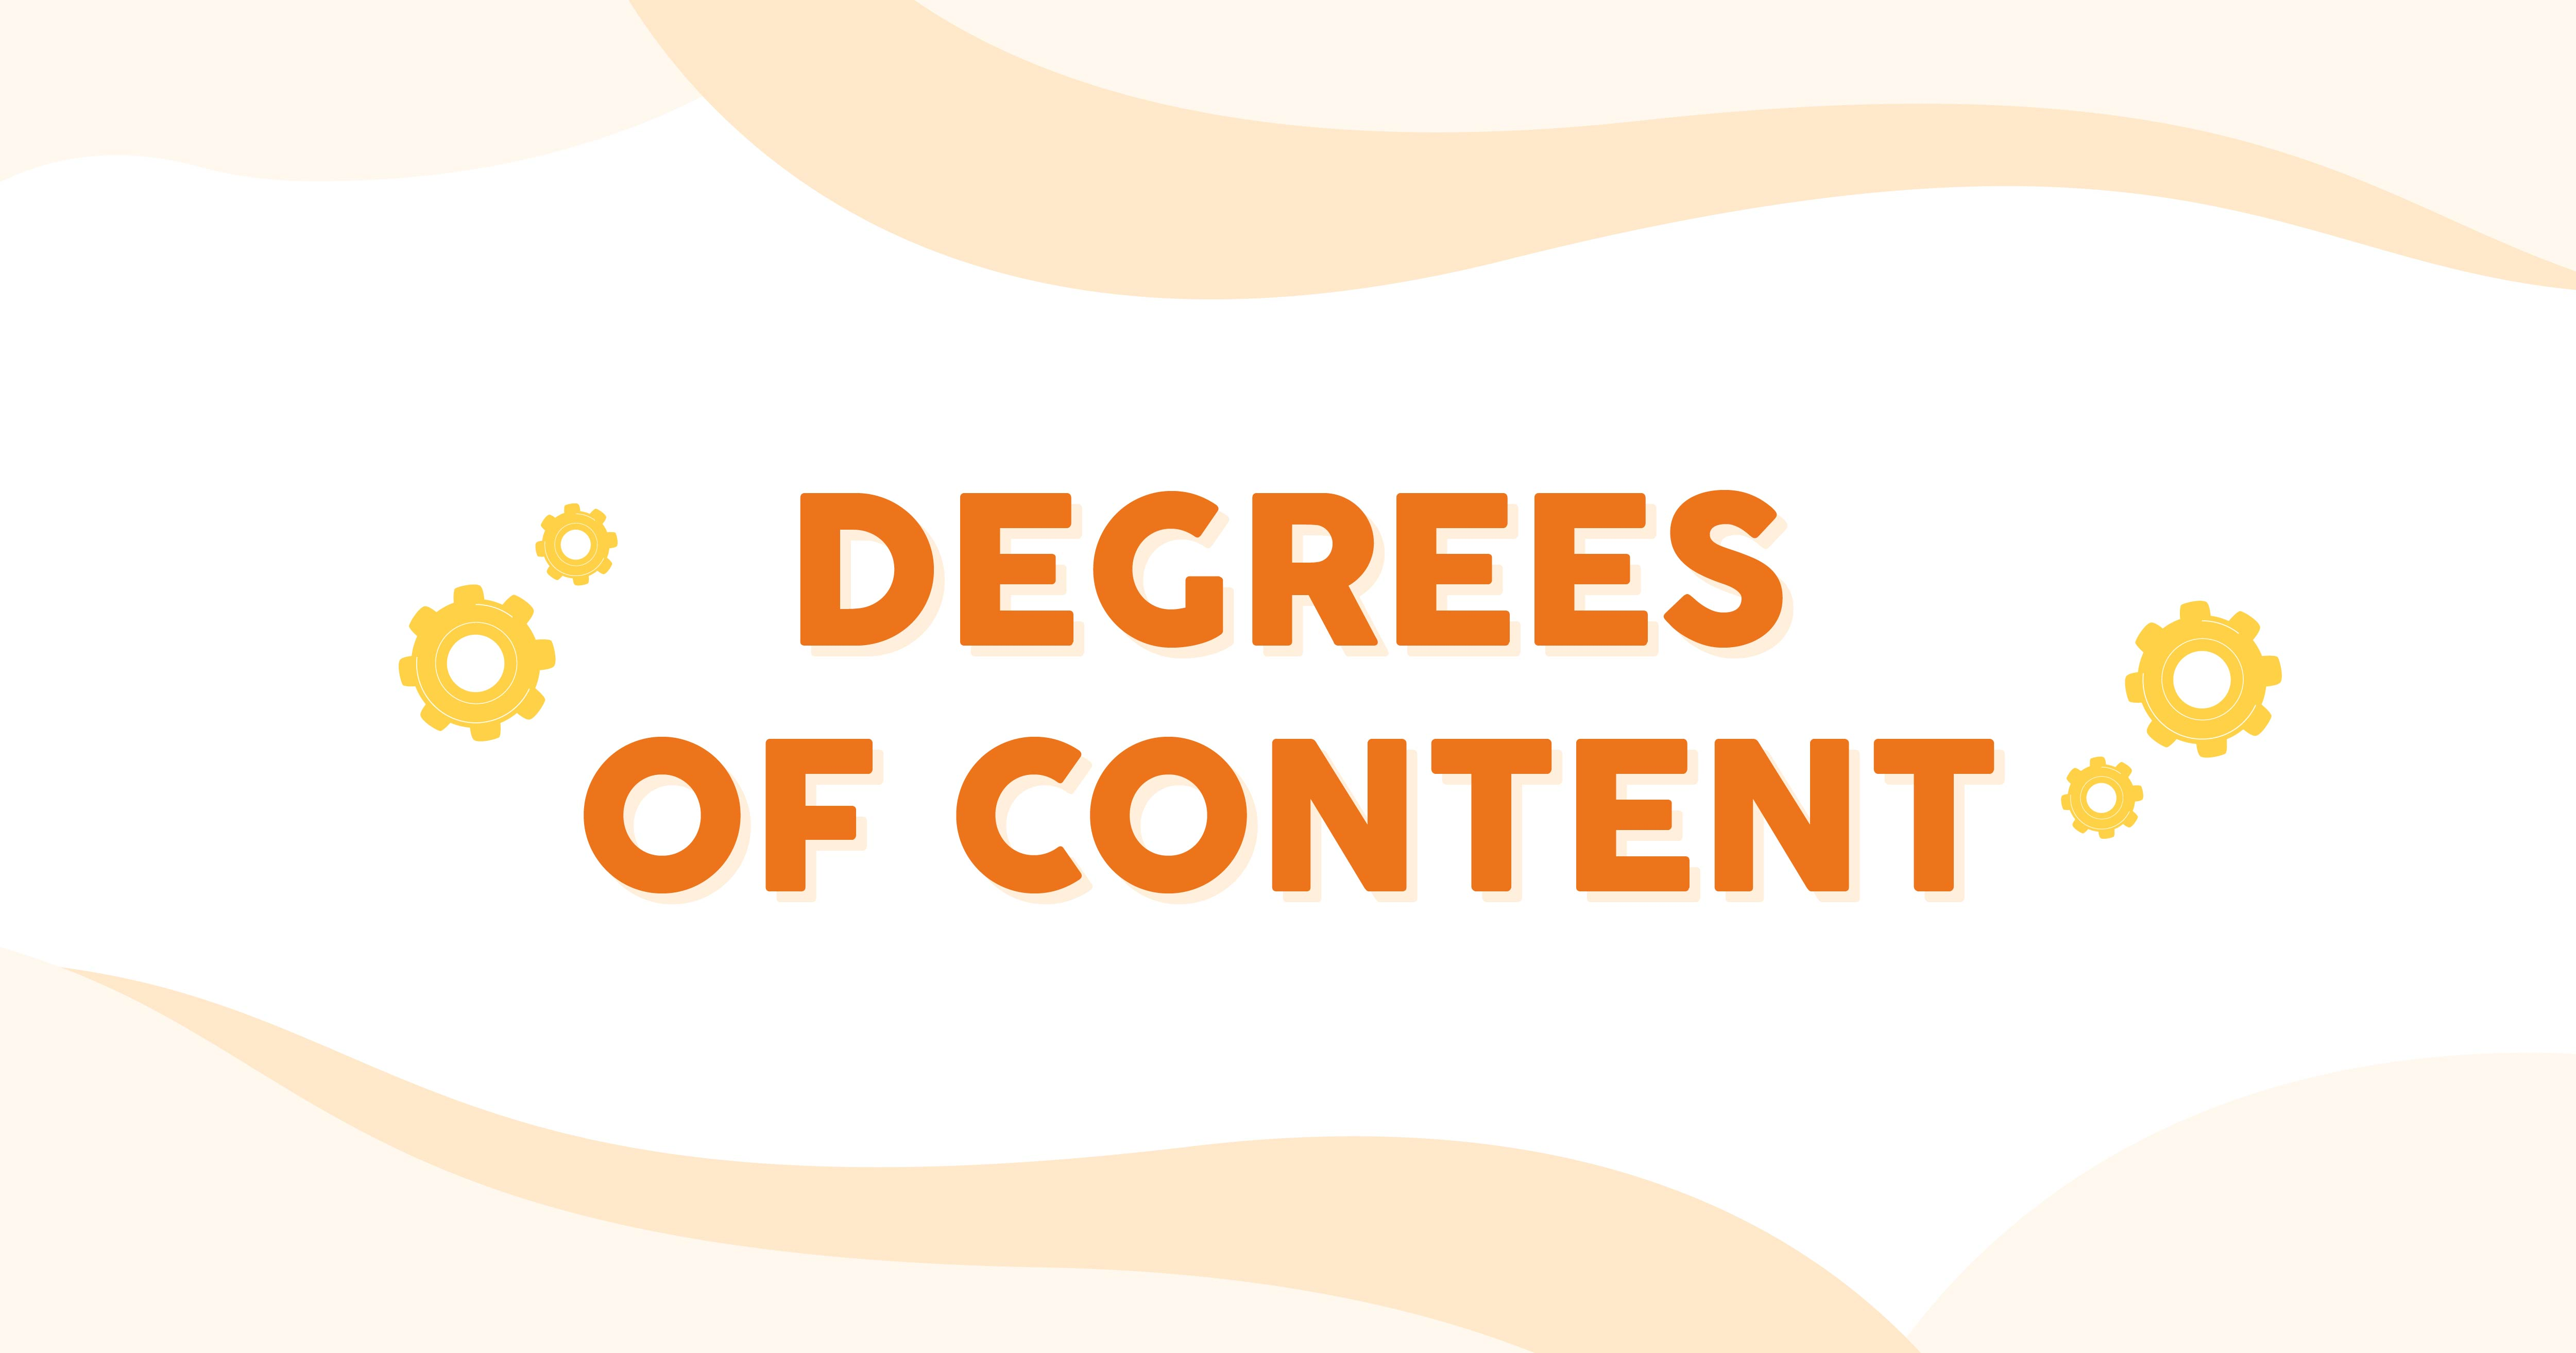 Degrees of Content